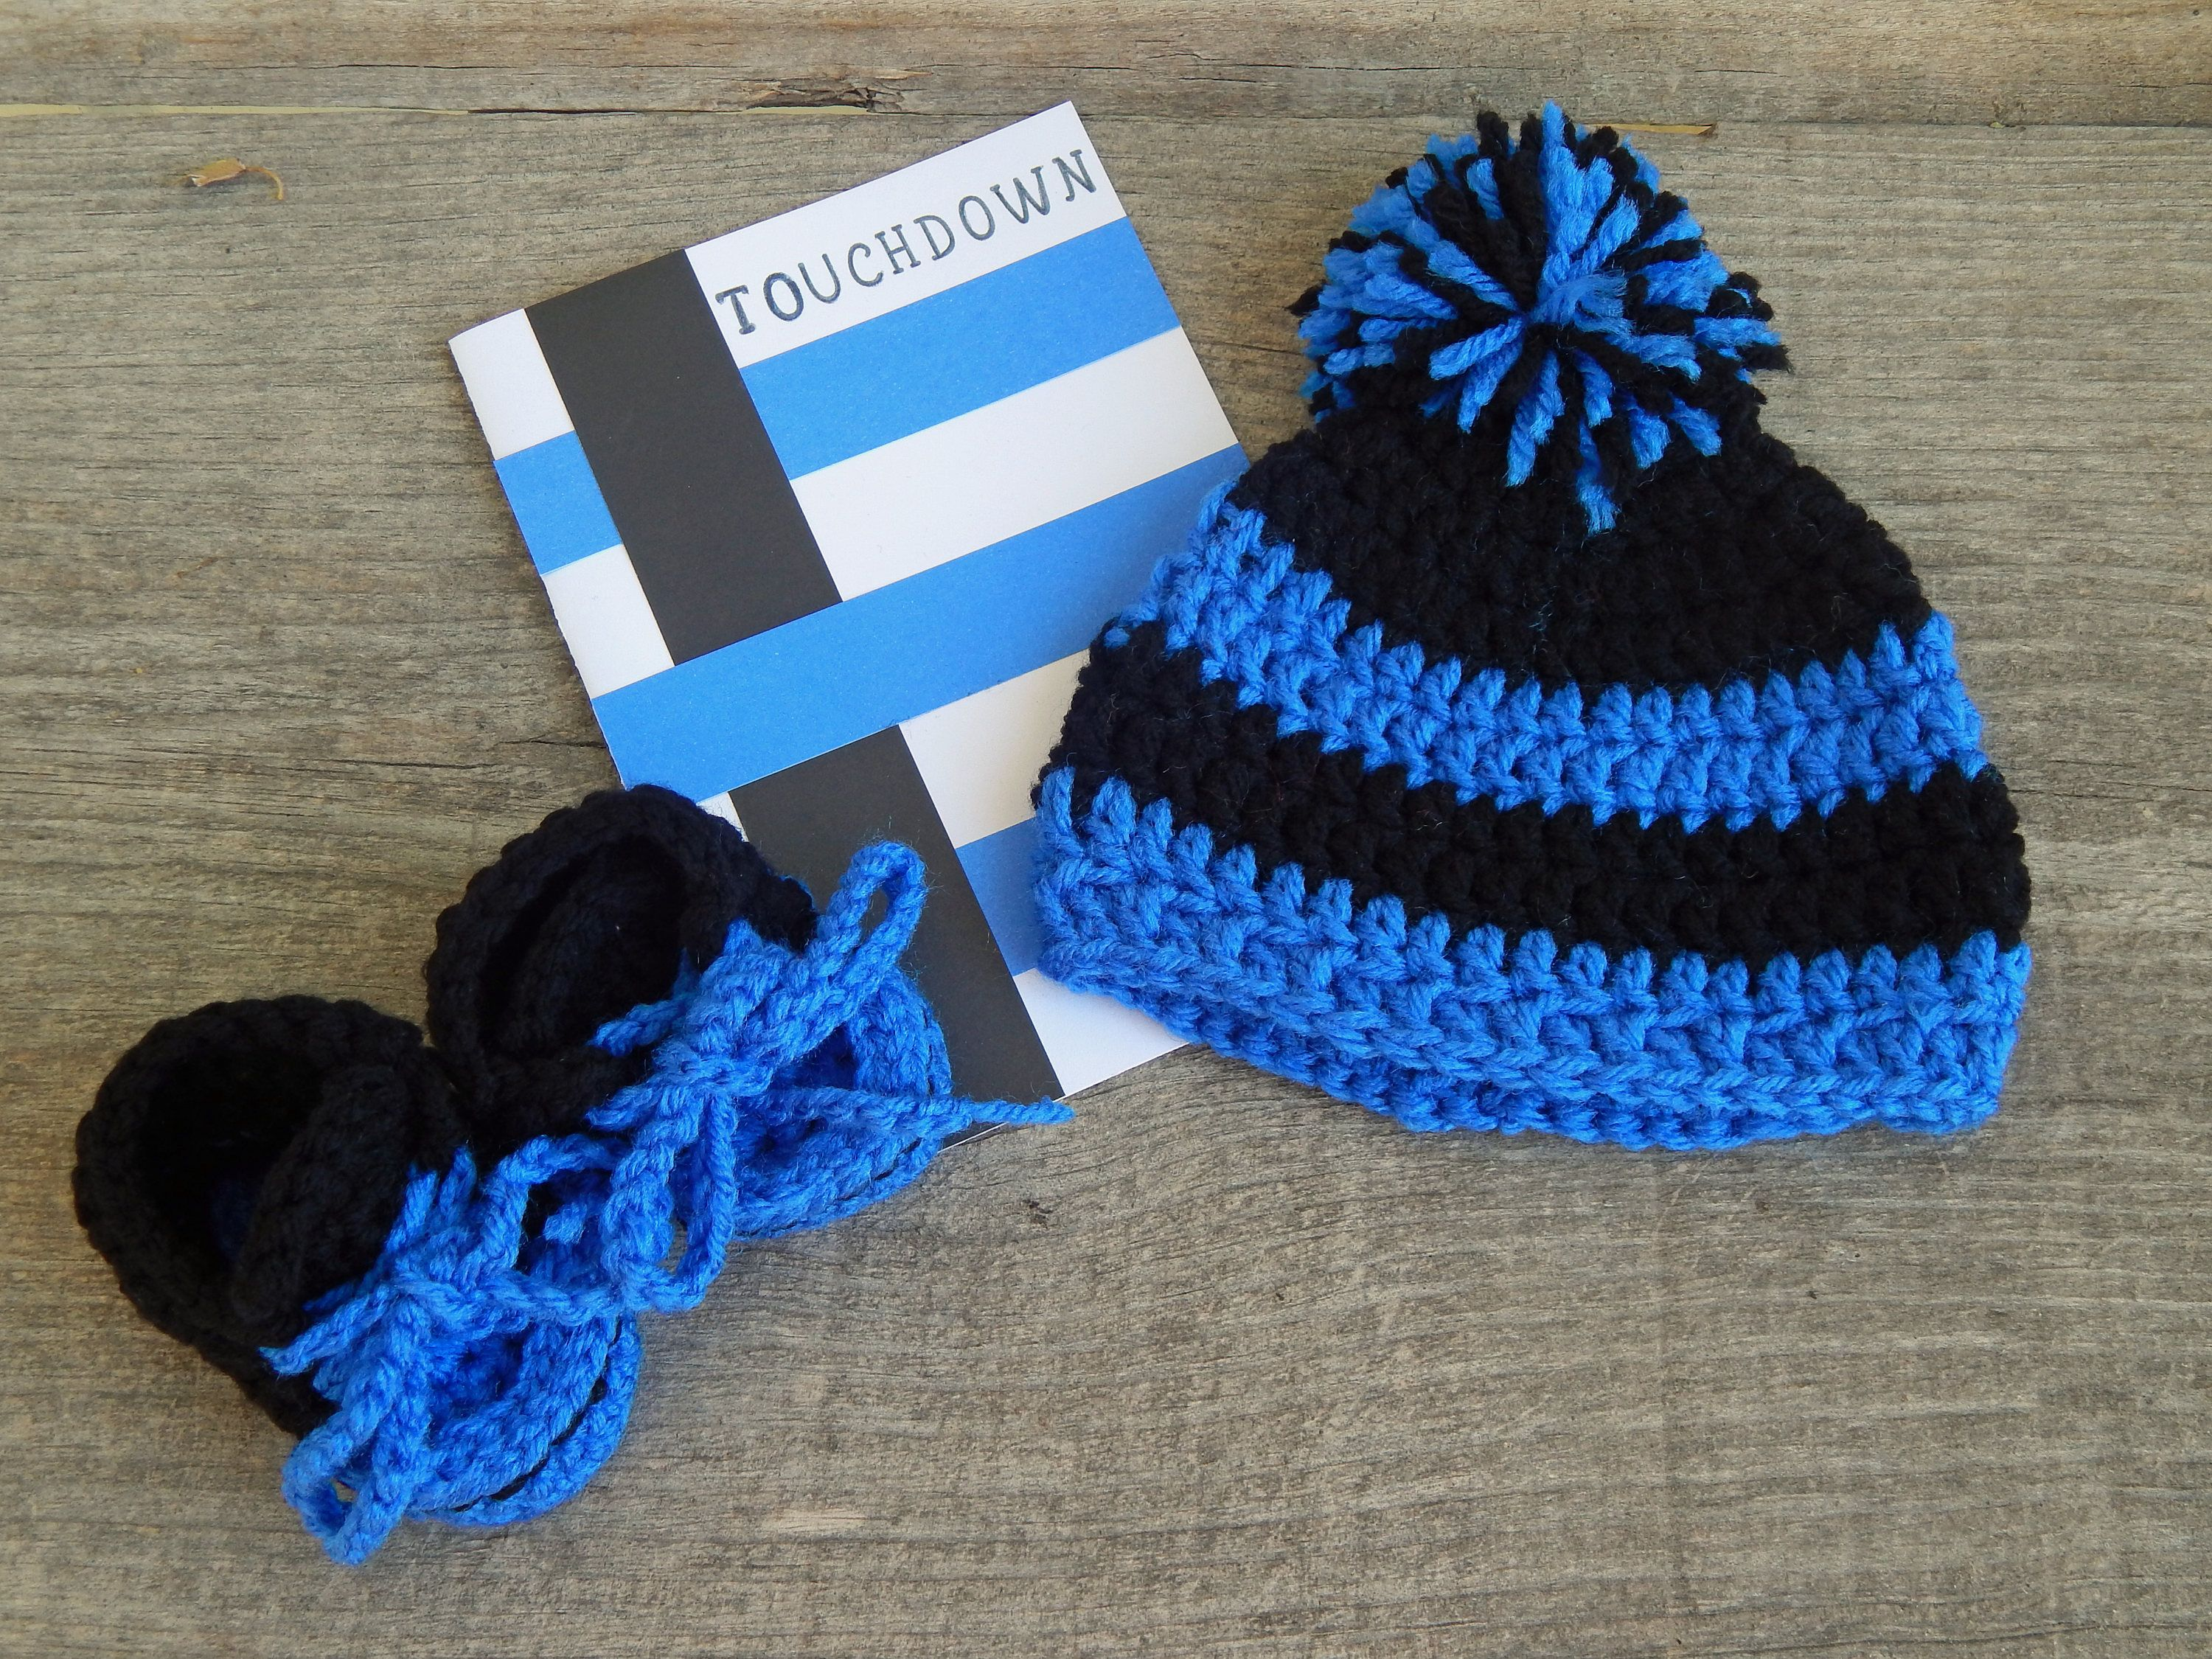 buy online 91838 210ca Pregnancy Announcement Carolina Panthers-Baby shower gift ...